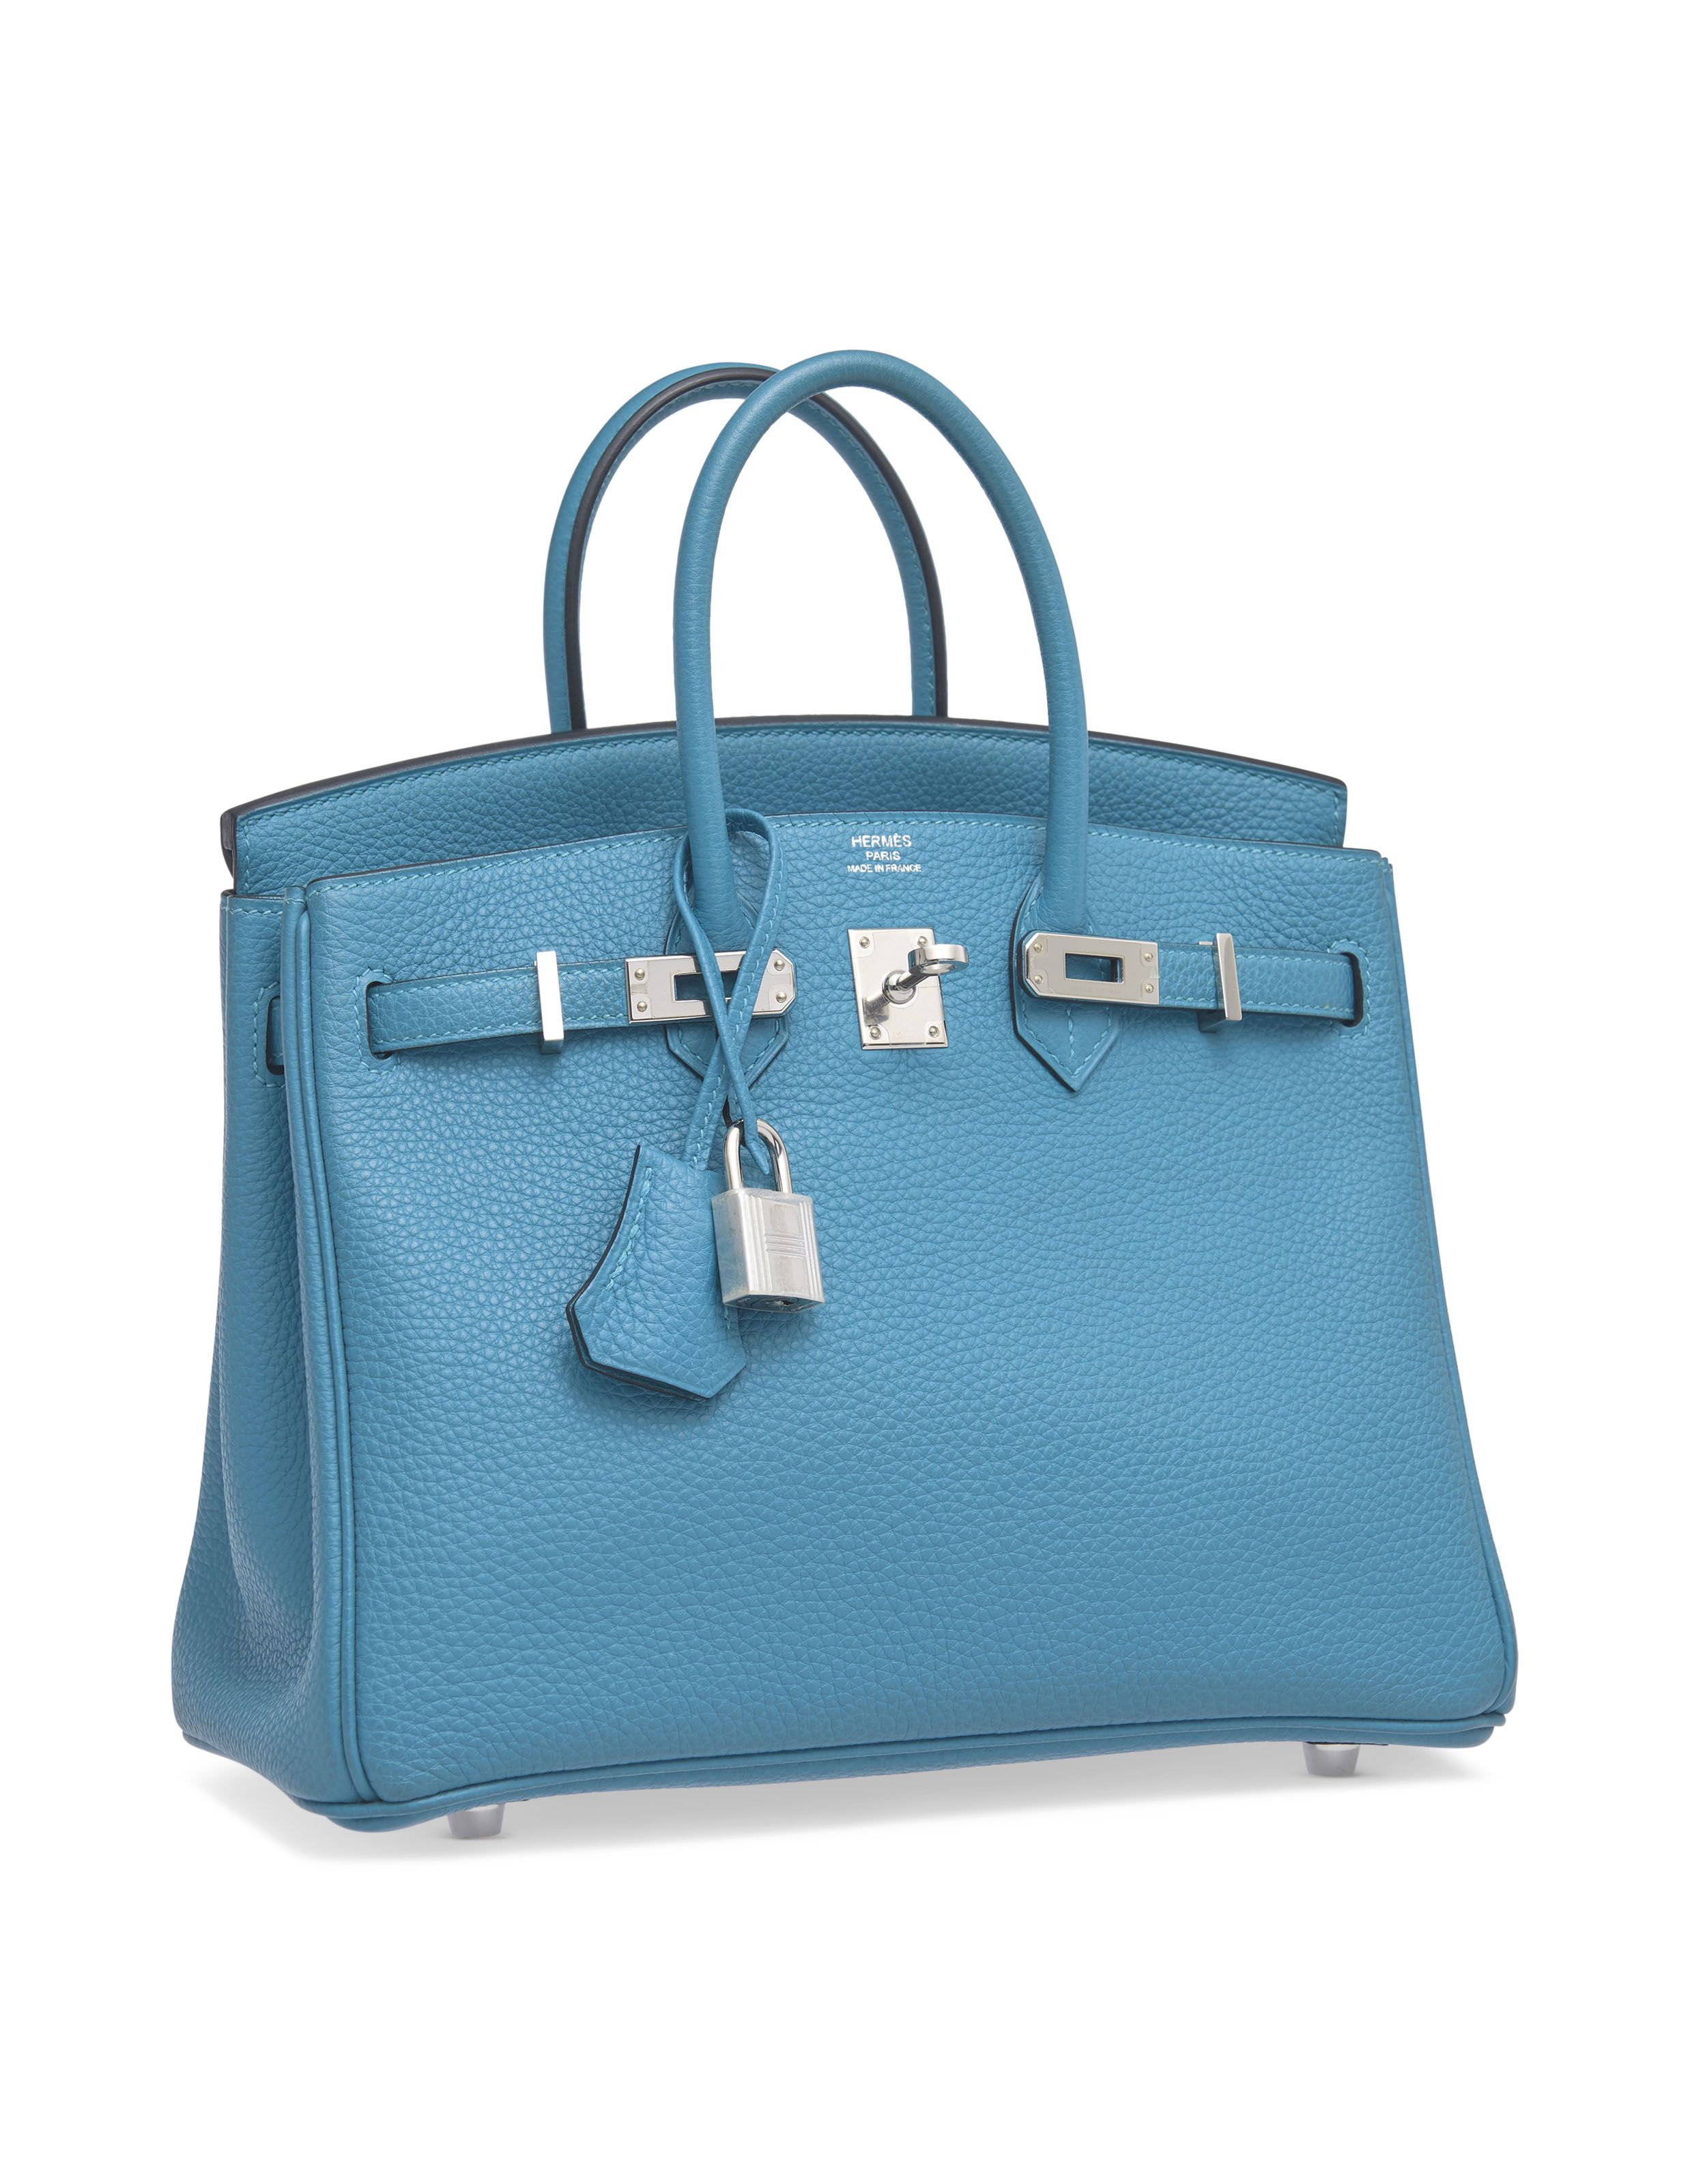 202ab85e2c A turquoise togo leather birkin 25 with palladium hardware